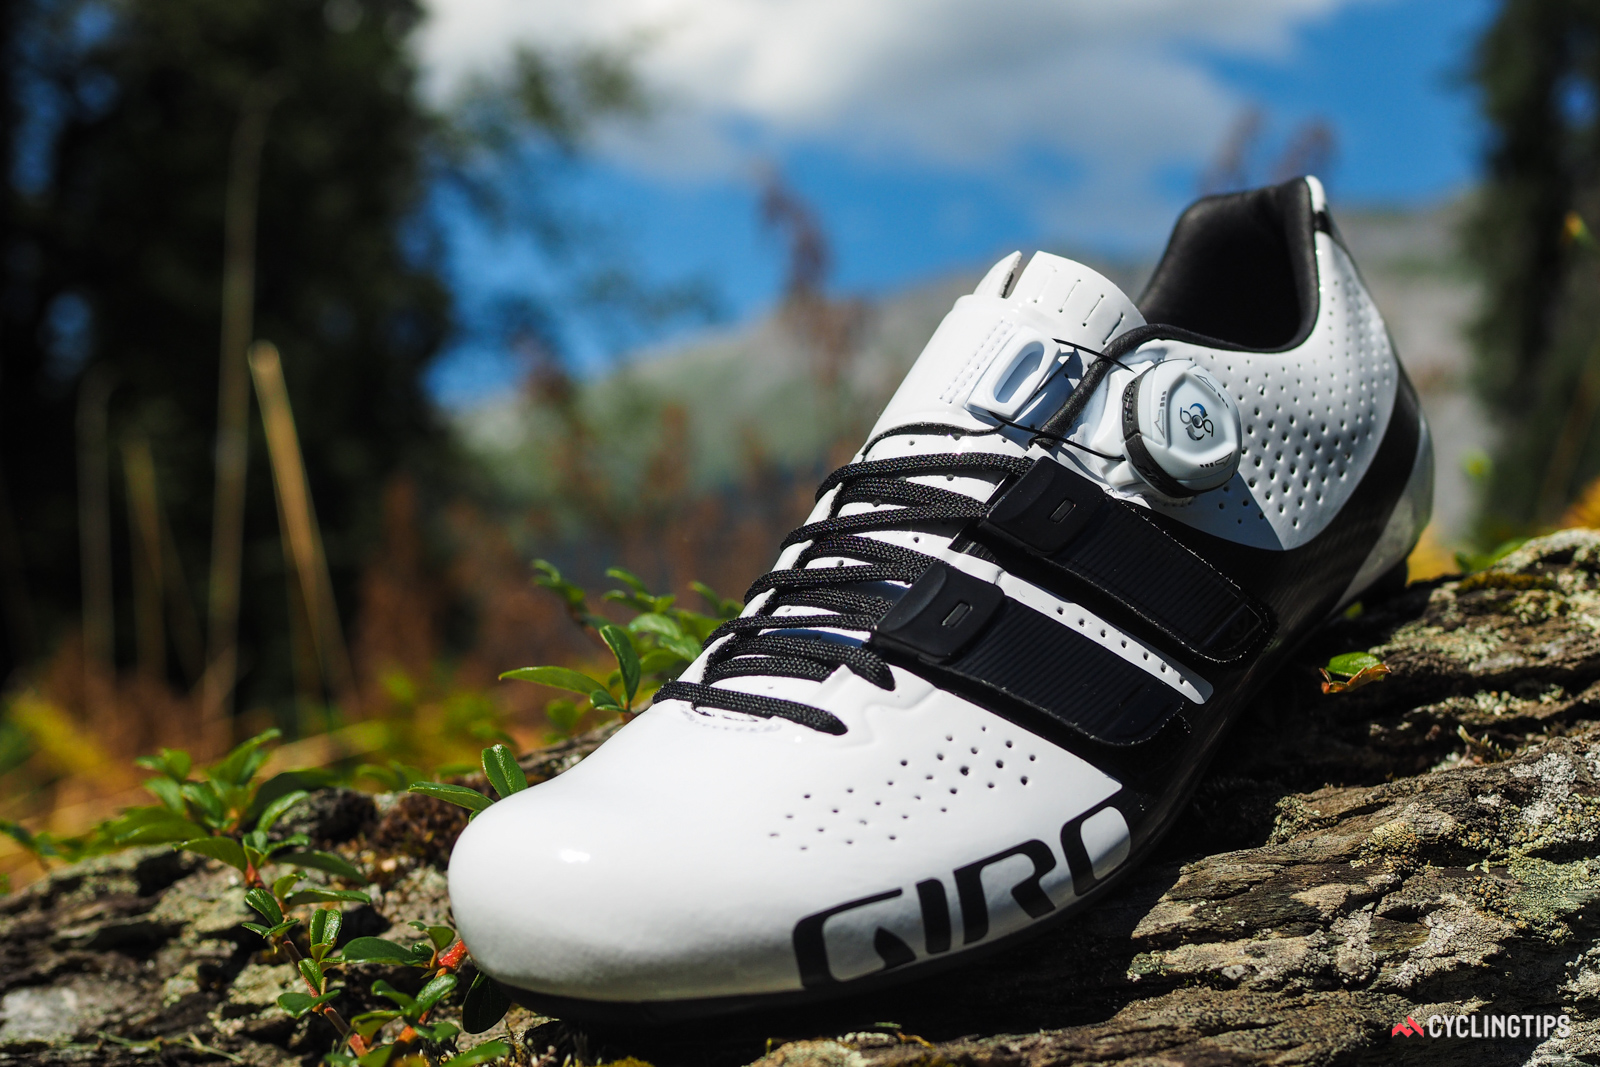 Giro says the Techlace design offers the comfort and suppleness of laces but with the quicker adjustability of hook-and-loop straps. They're also replaceable, and Giro will offer 12 different lace lengths (and six colors) so that users will also always end up with perfectly situated straps.